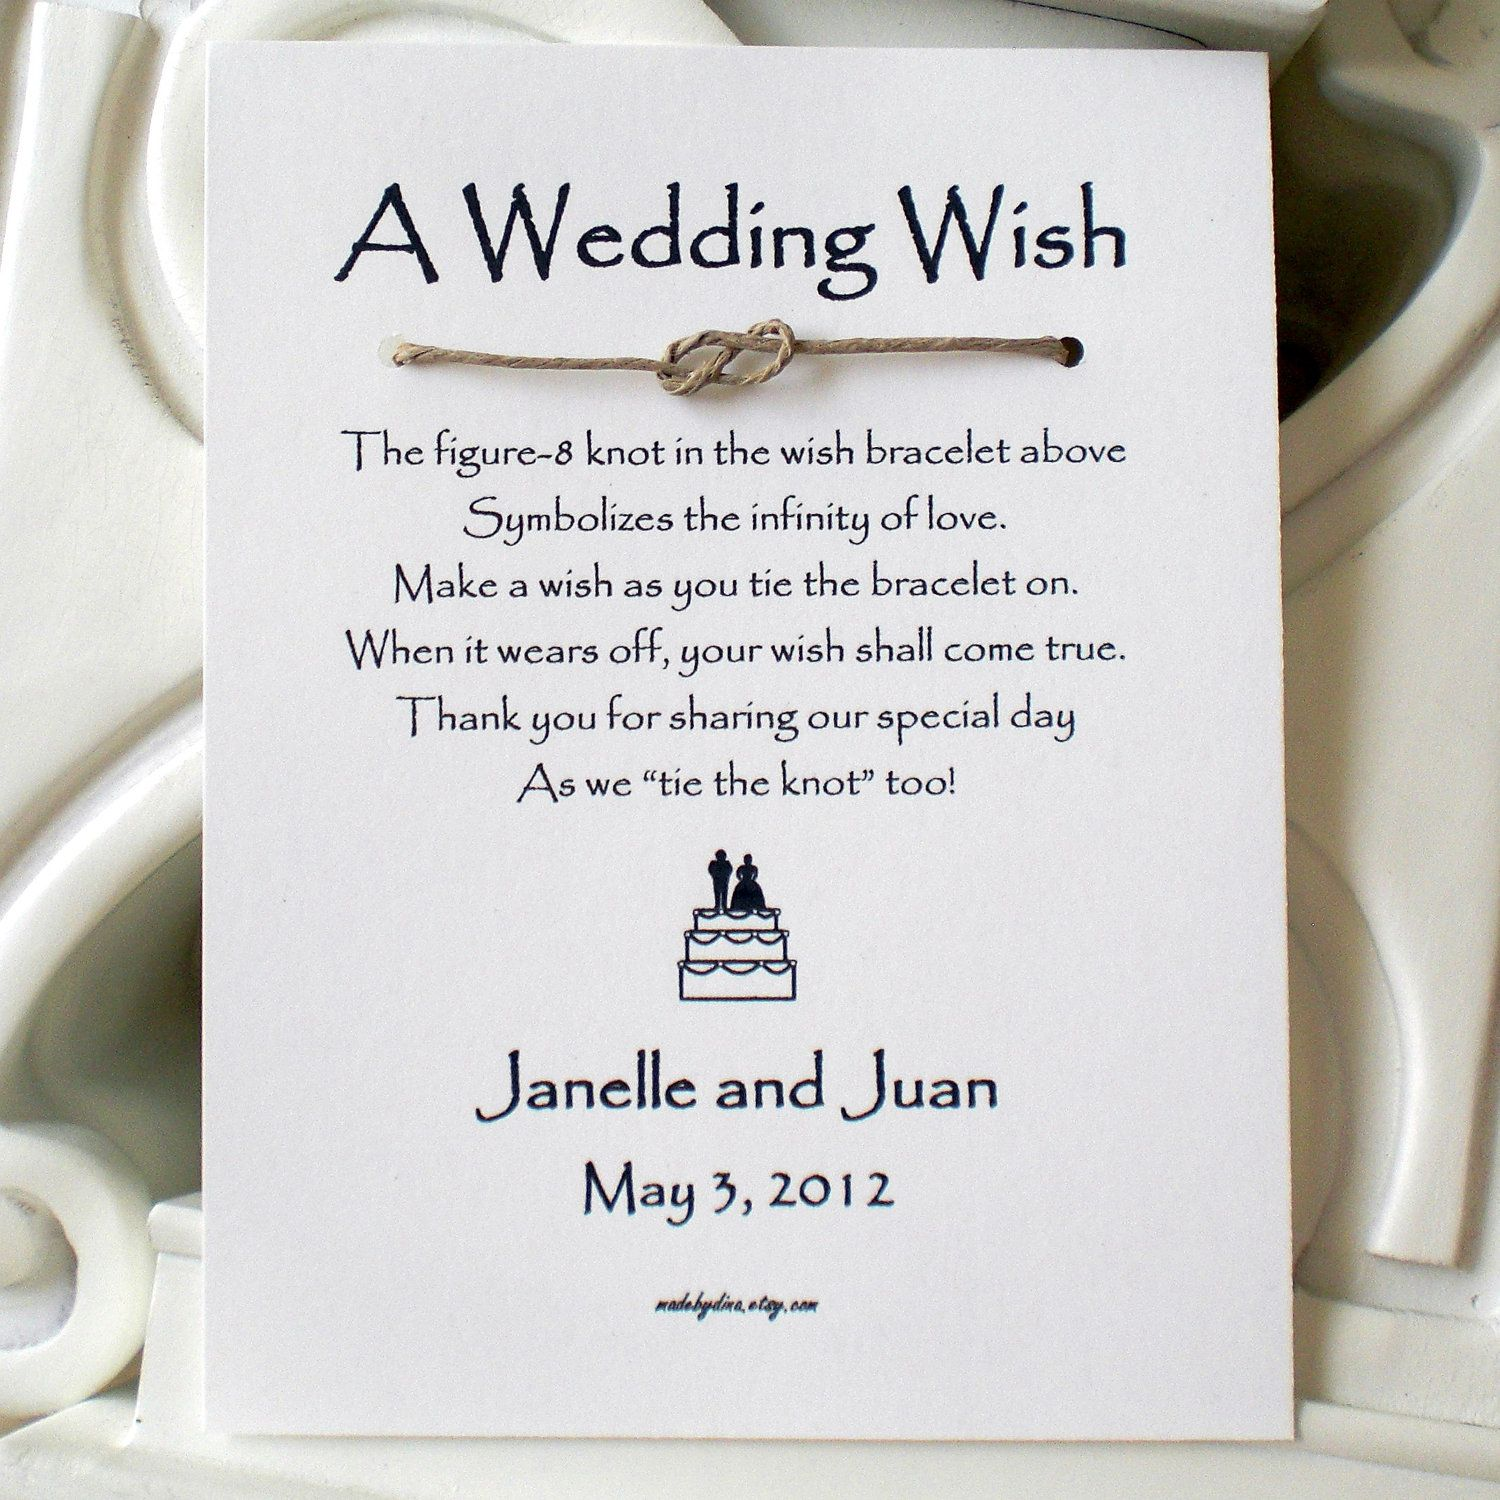 tying the knot this is so cute wedding ideas pinterest